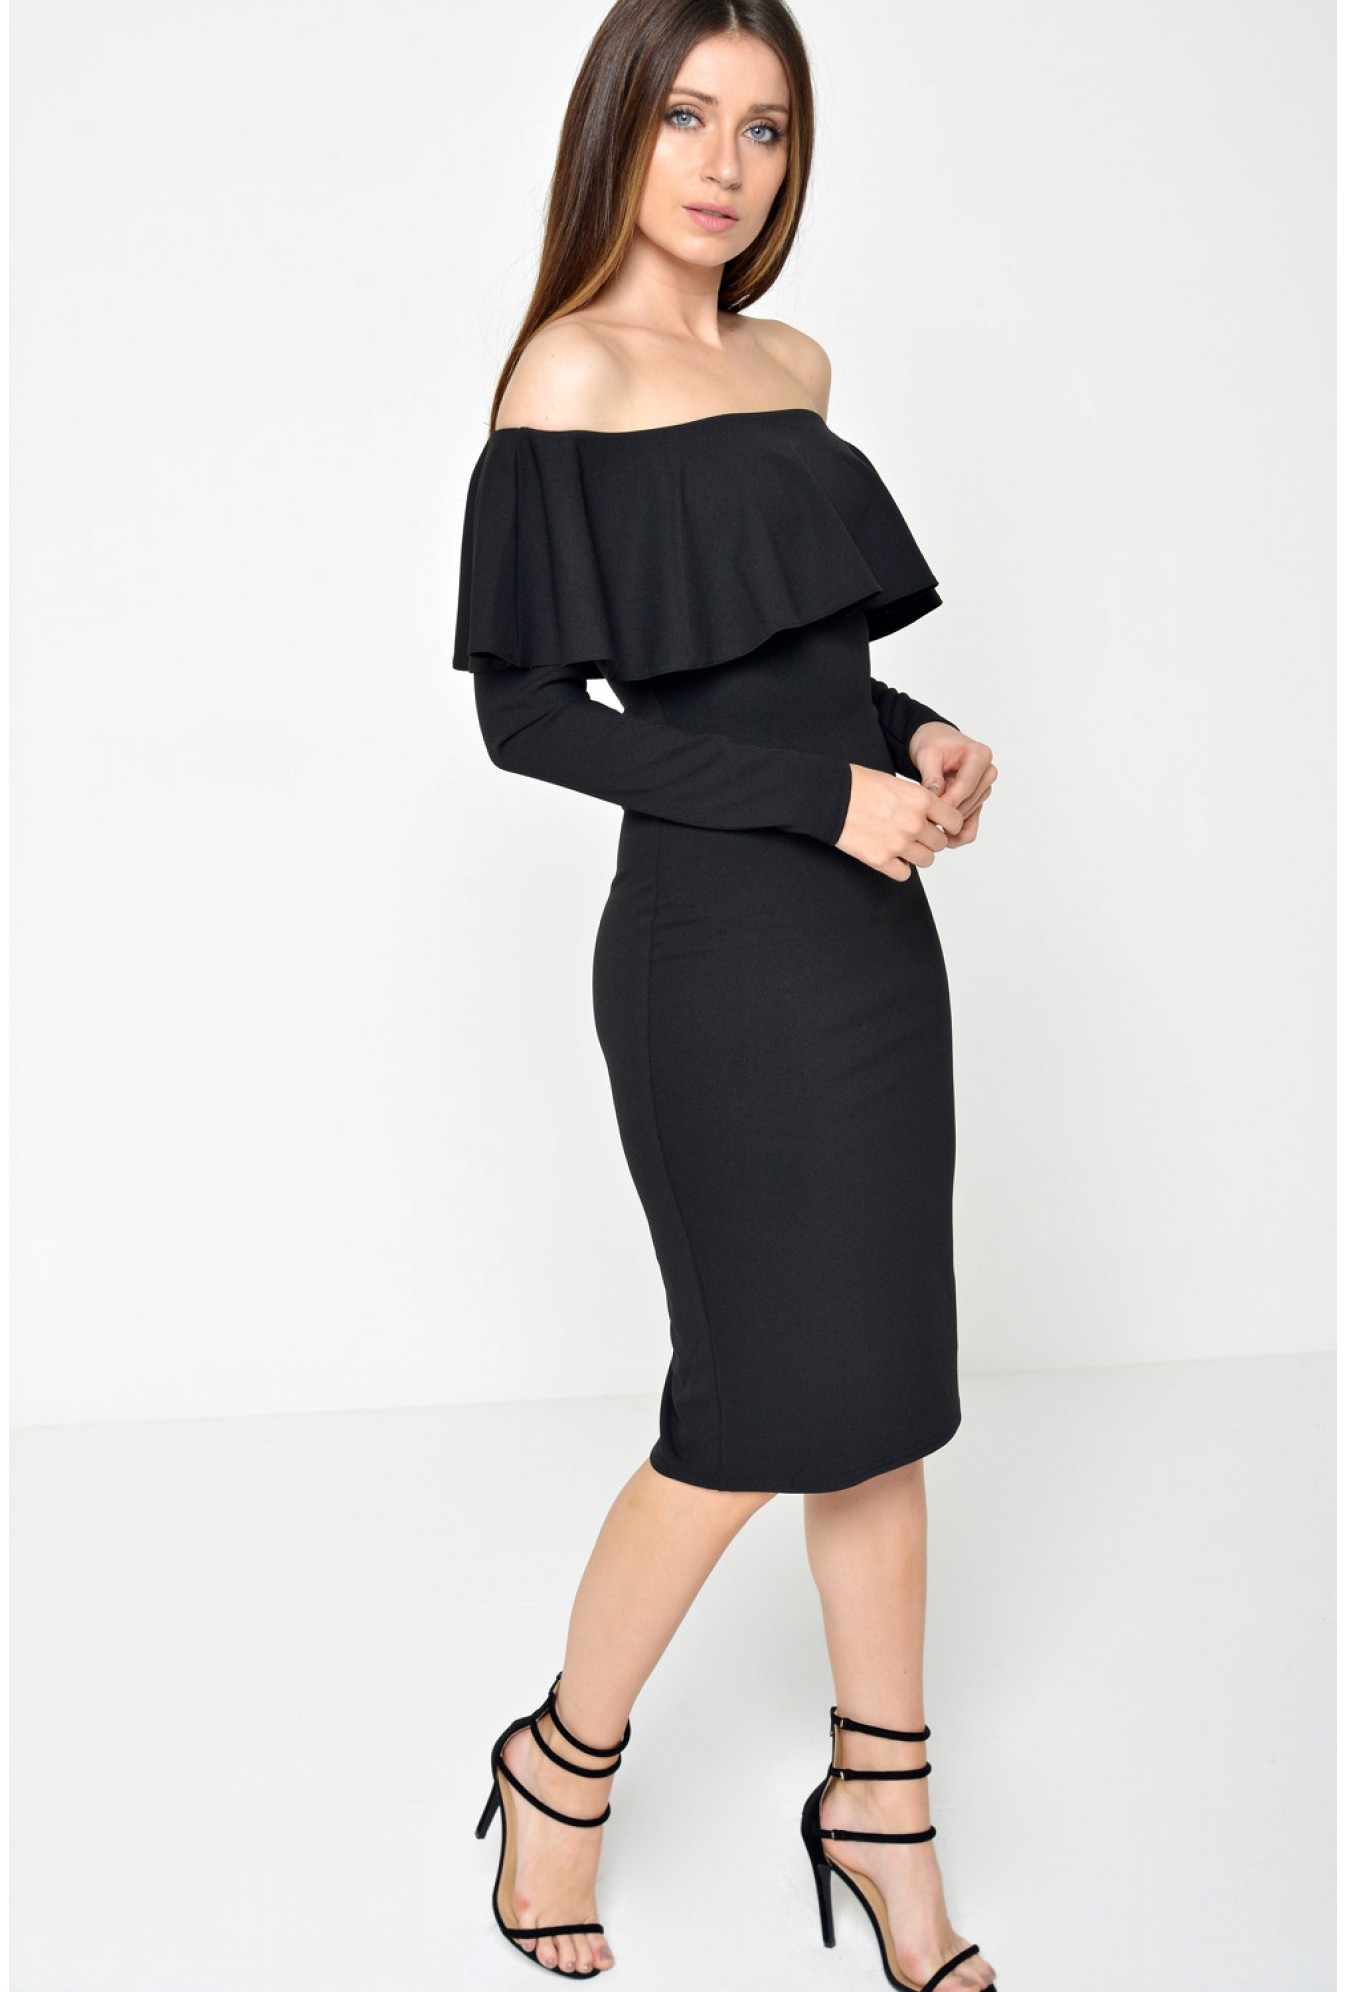 912921aa5d8 Ad Lib Luella Off Shoulder Long Sleeve Dress in Black | iCLOTHING